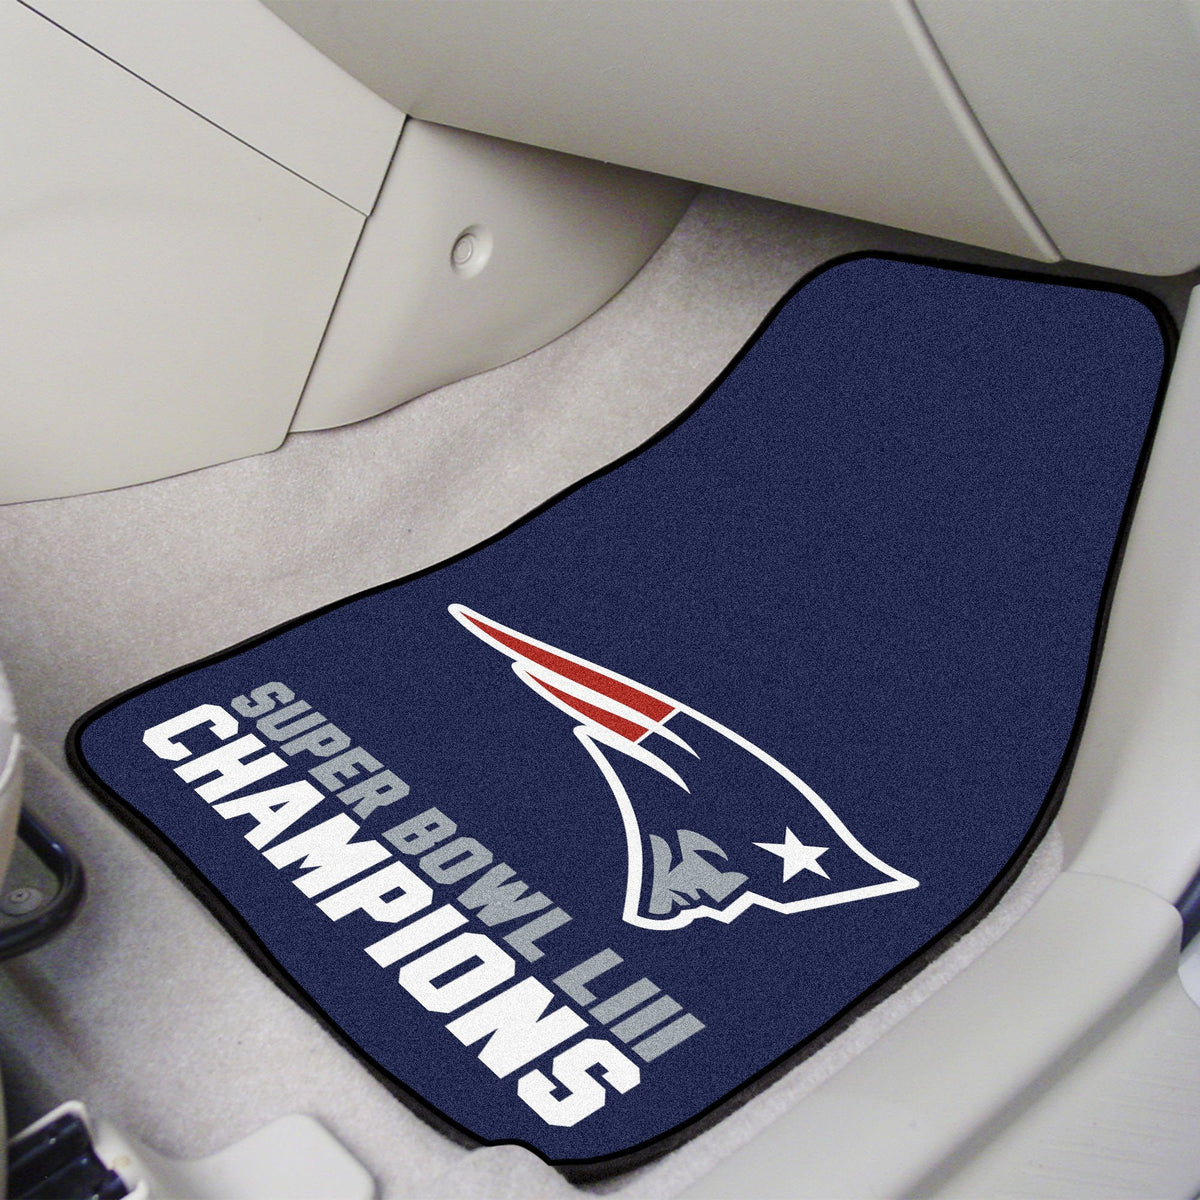 "NFL - 2-pc Carpet Car Mat Set, 17"" x 27"" NFL Mats, Front Car Mats, 2-pc Carpet Car Mat Set, NFL, Auto Fan Mats New England Patriots 2"